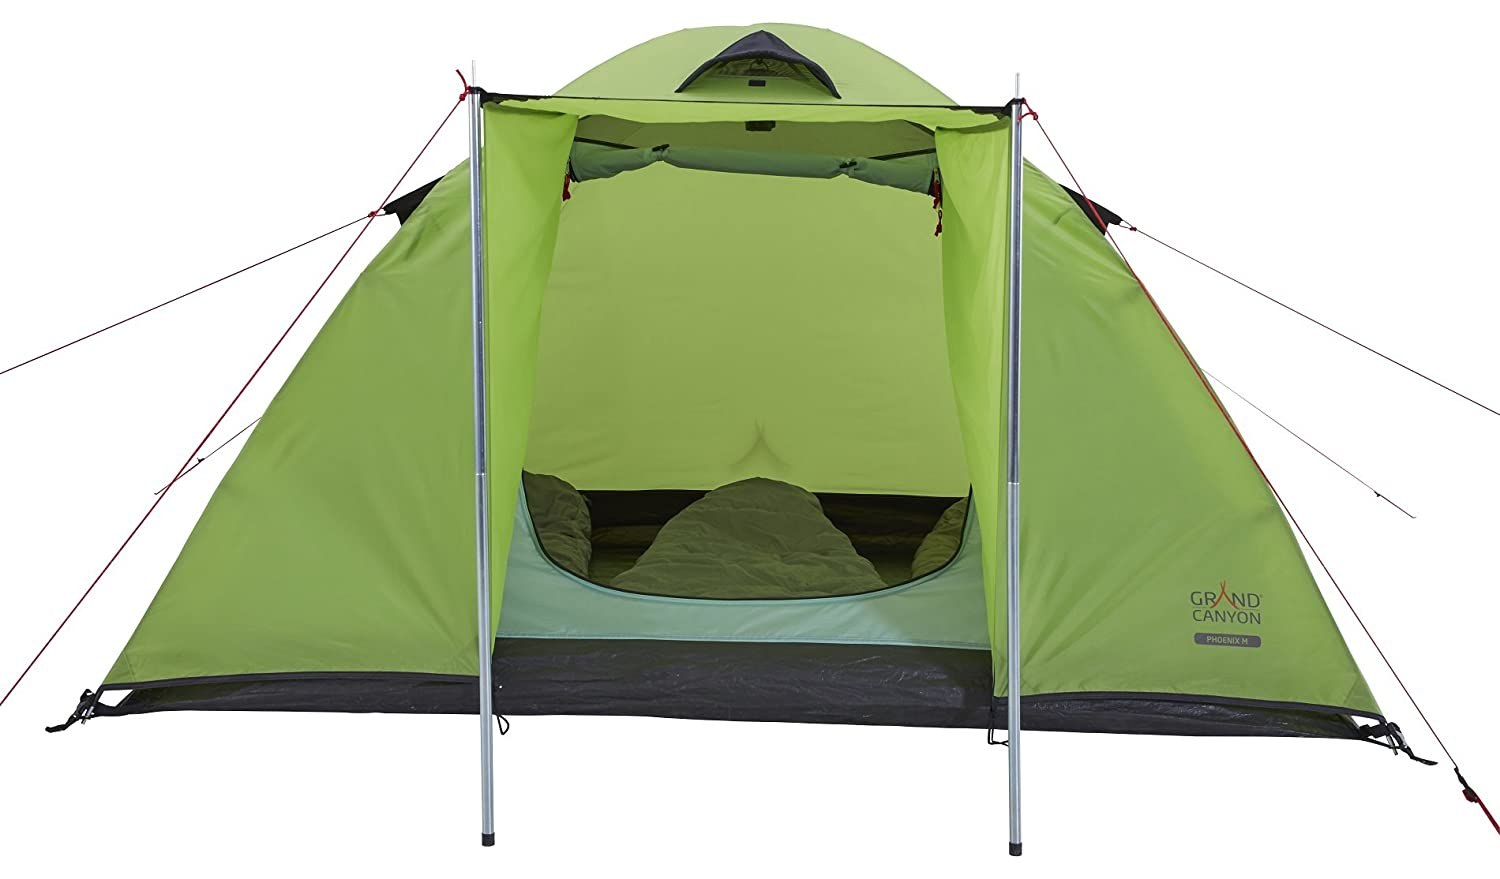 Grand Canyon Phoenix - dome tent, different colors and sizes: Amazon ...